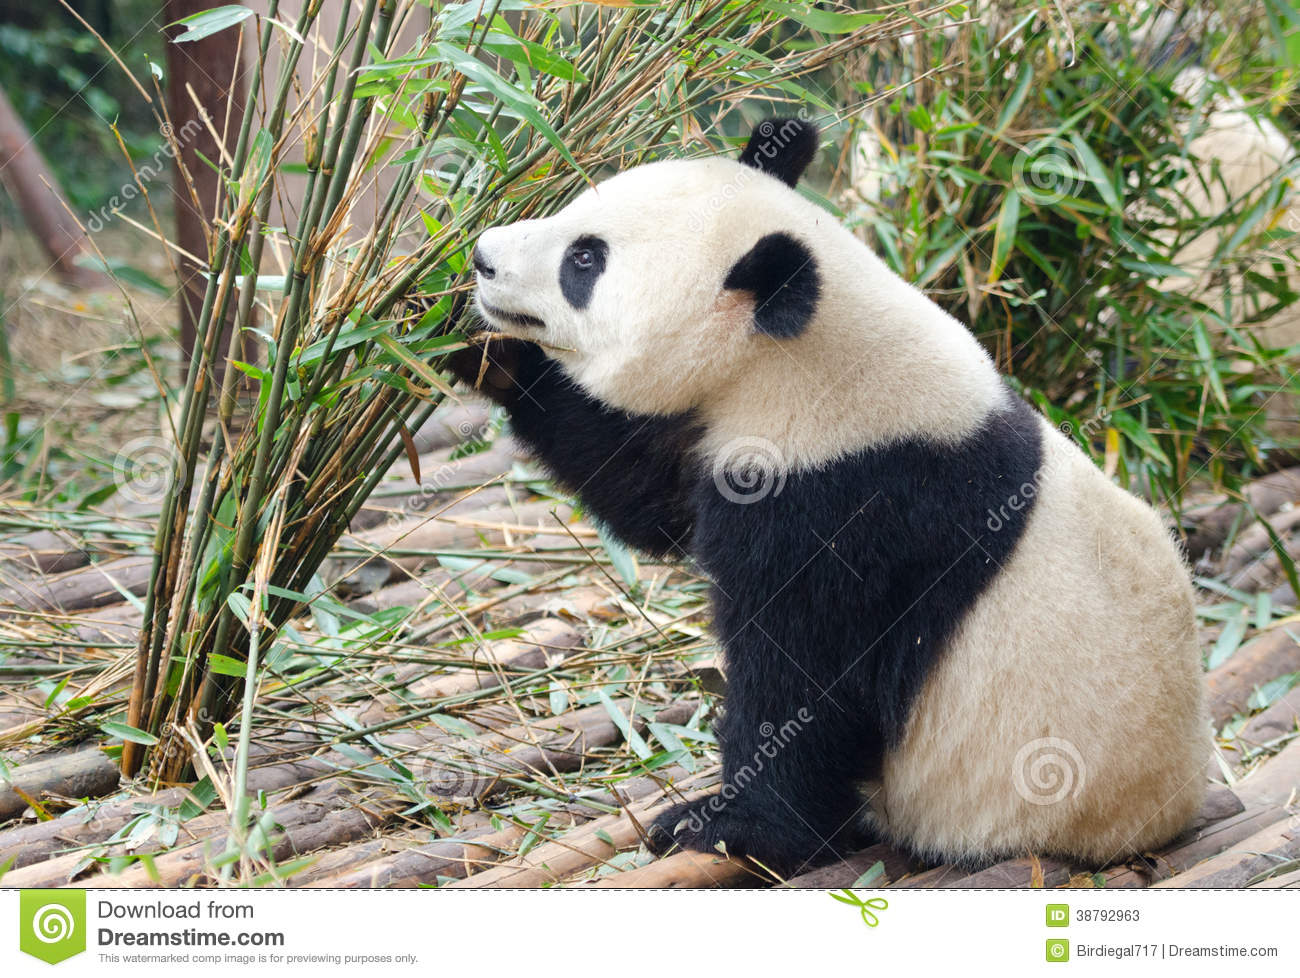 Jong Reuzepanda eating bamboo, China